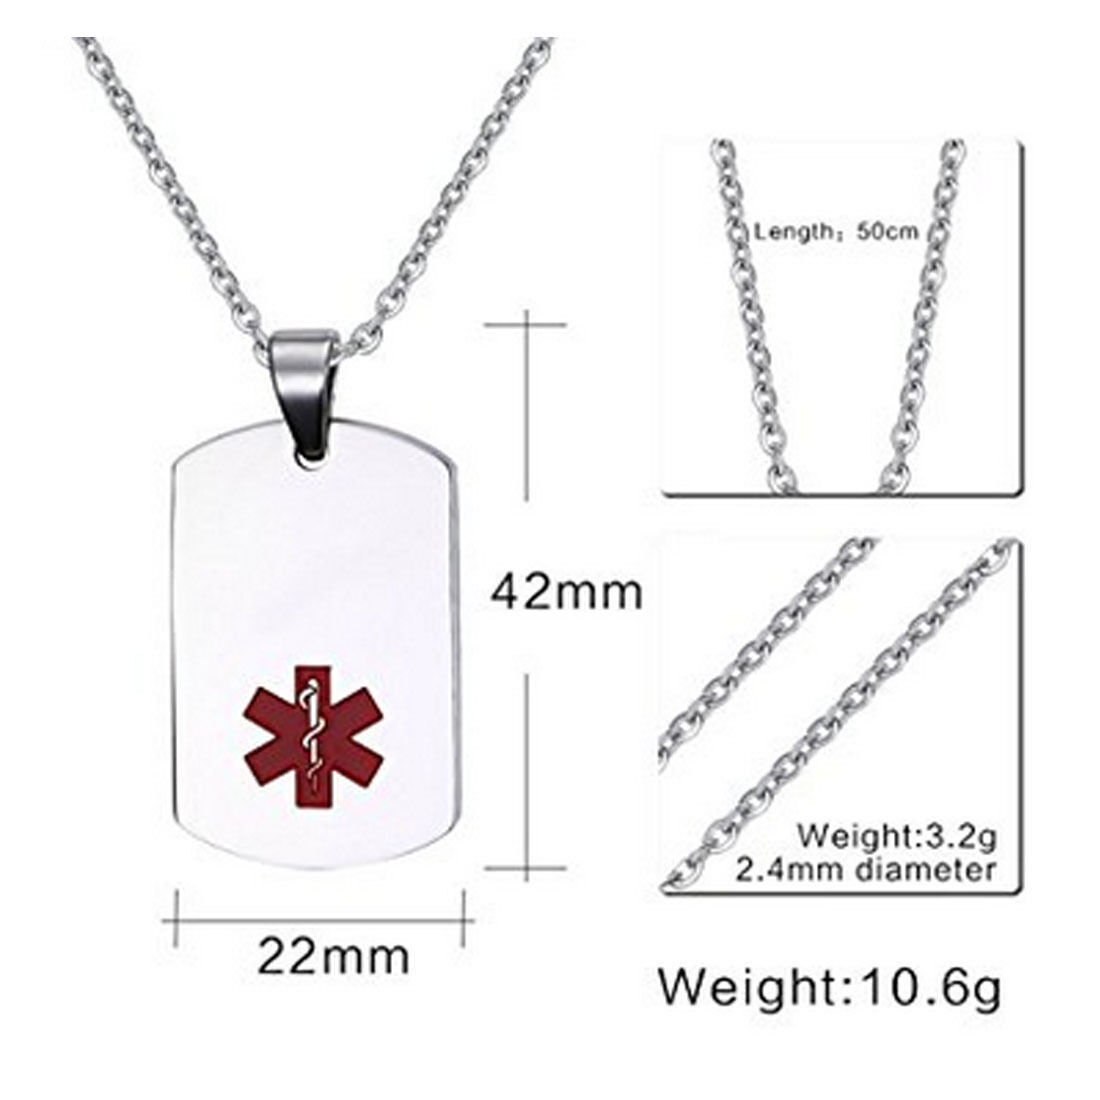 New Stainless Steel Zodiac Dog Tag Pendant Men S Women S: Vincenza Stainless Steel Medical Alert ID Dog Tag Pendant